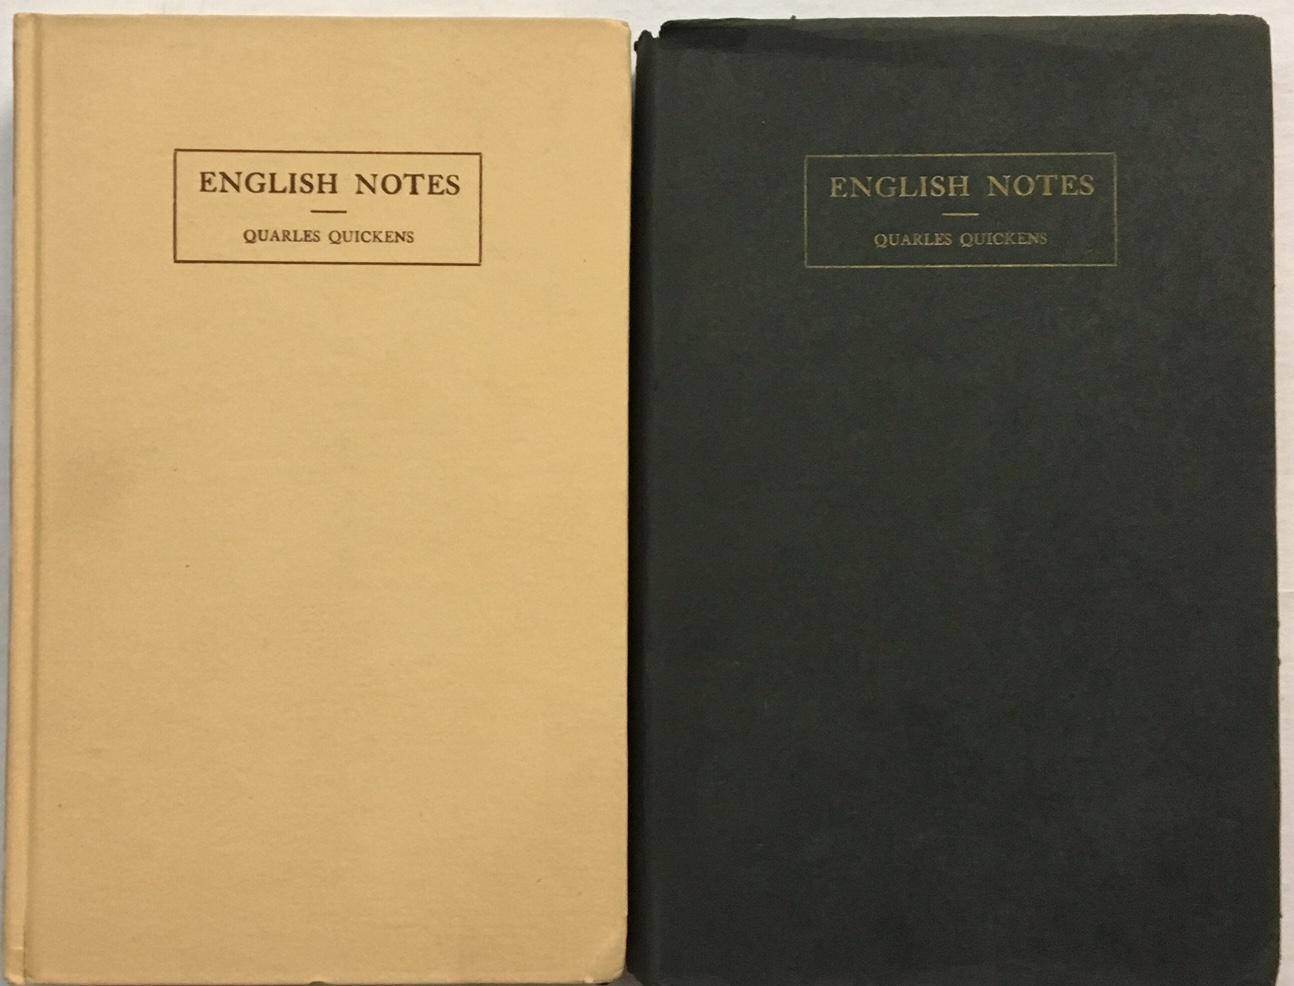 English notes. a rare and unknown work being a reply to Charles Dickens's American Notes Poe, Edgar Allan. Quickens, Quarles. With critical comments